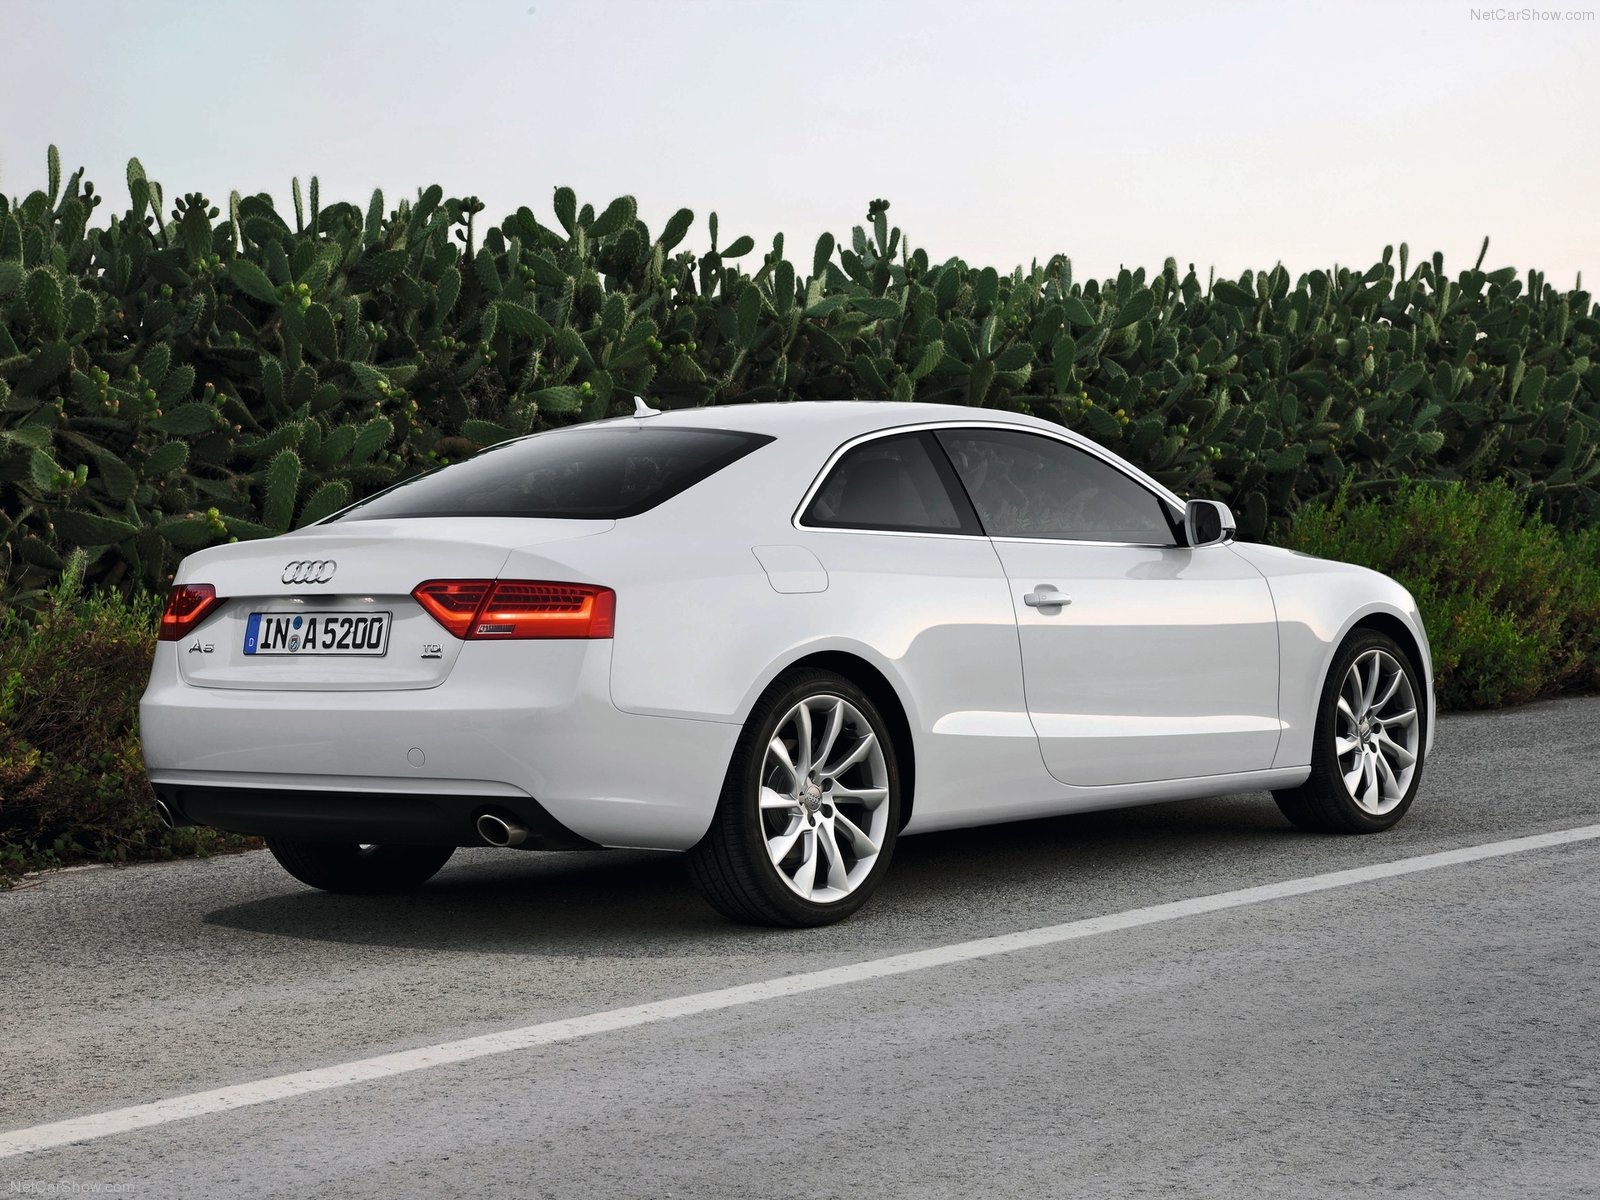 3DTuning of Audi A5 Coupe 2012 3DTuning.com - unique on-line car ...